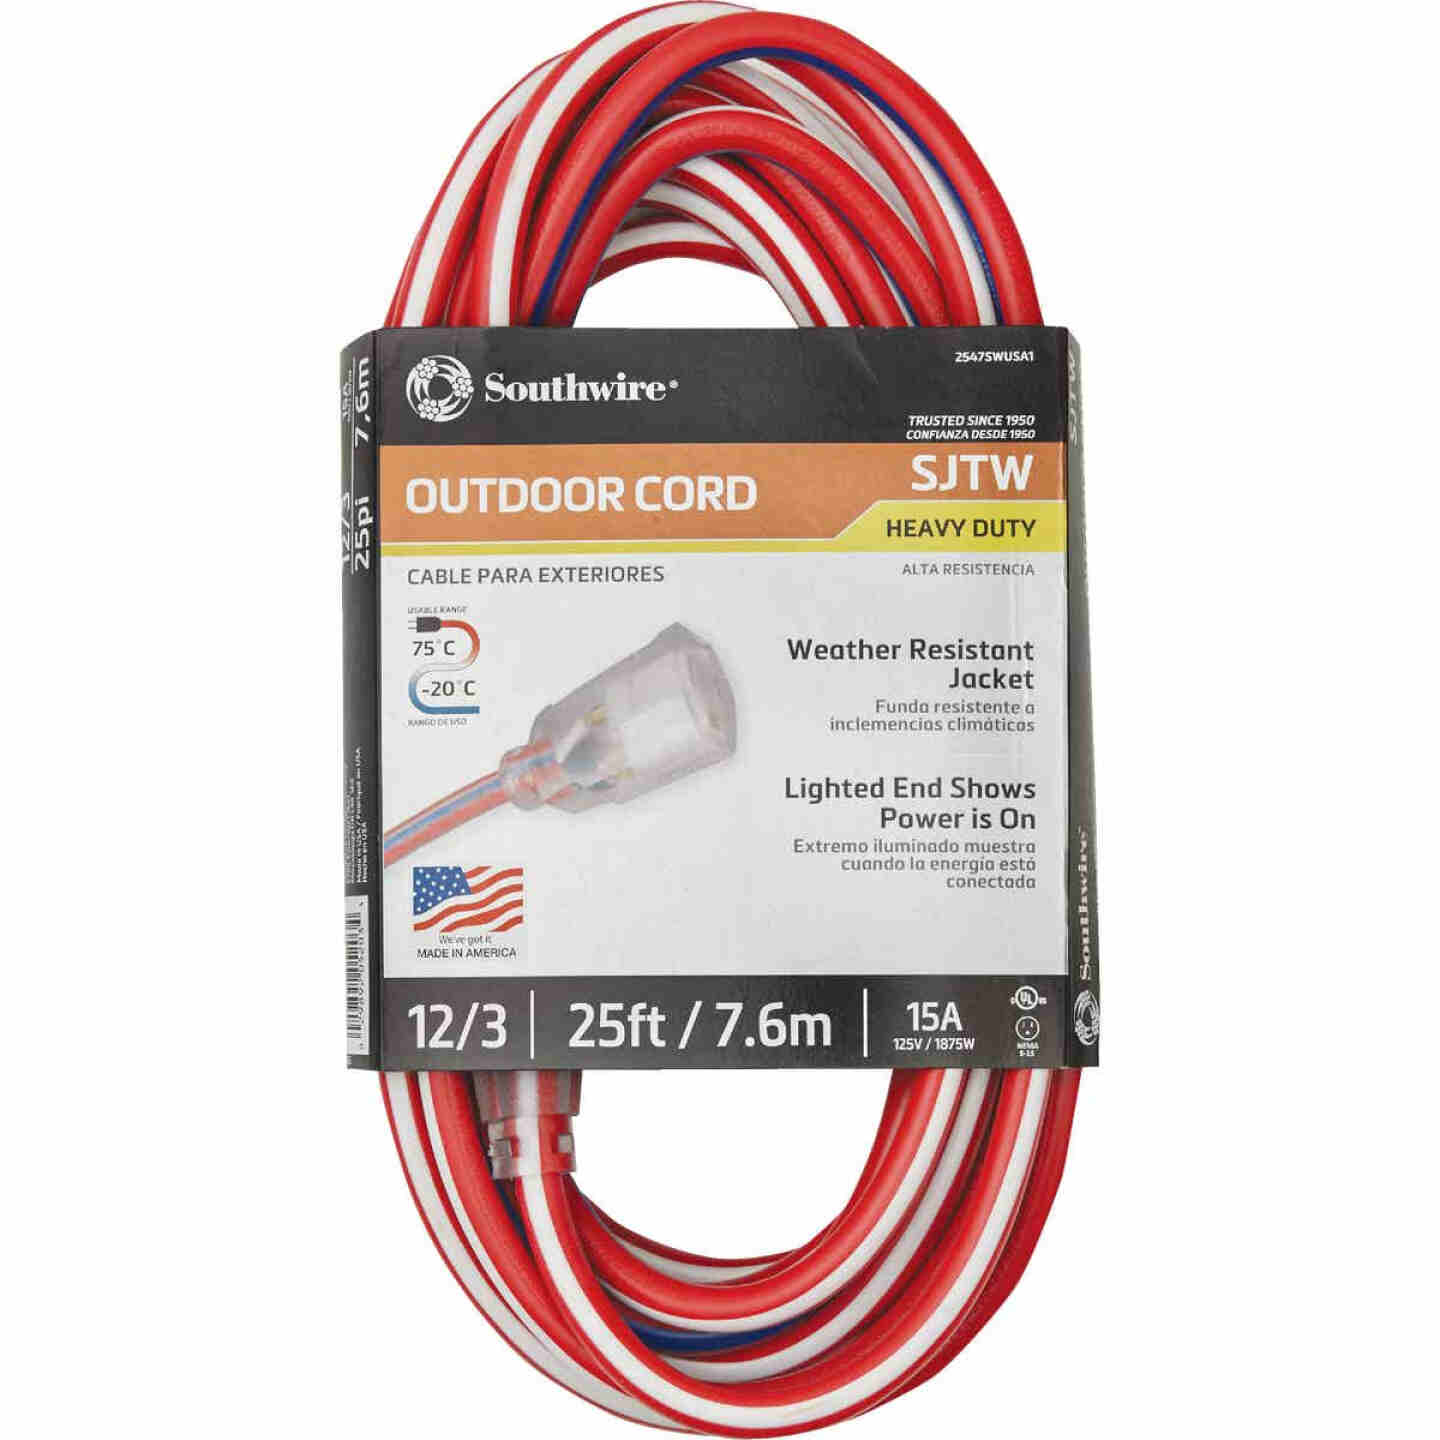 Southwire 25 Ft. 12/3 Indoor/Outdoor Red, White, & Blue Striped Patriotic Extension Cord Image 2